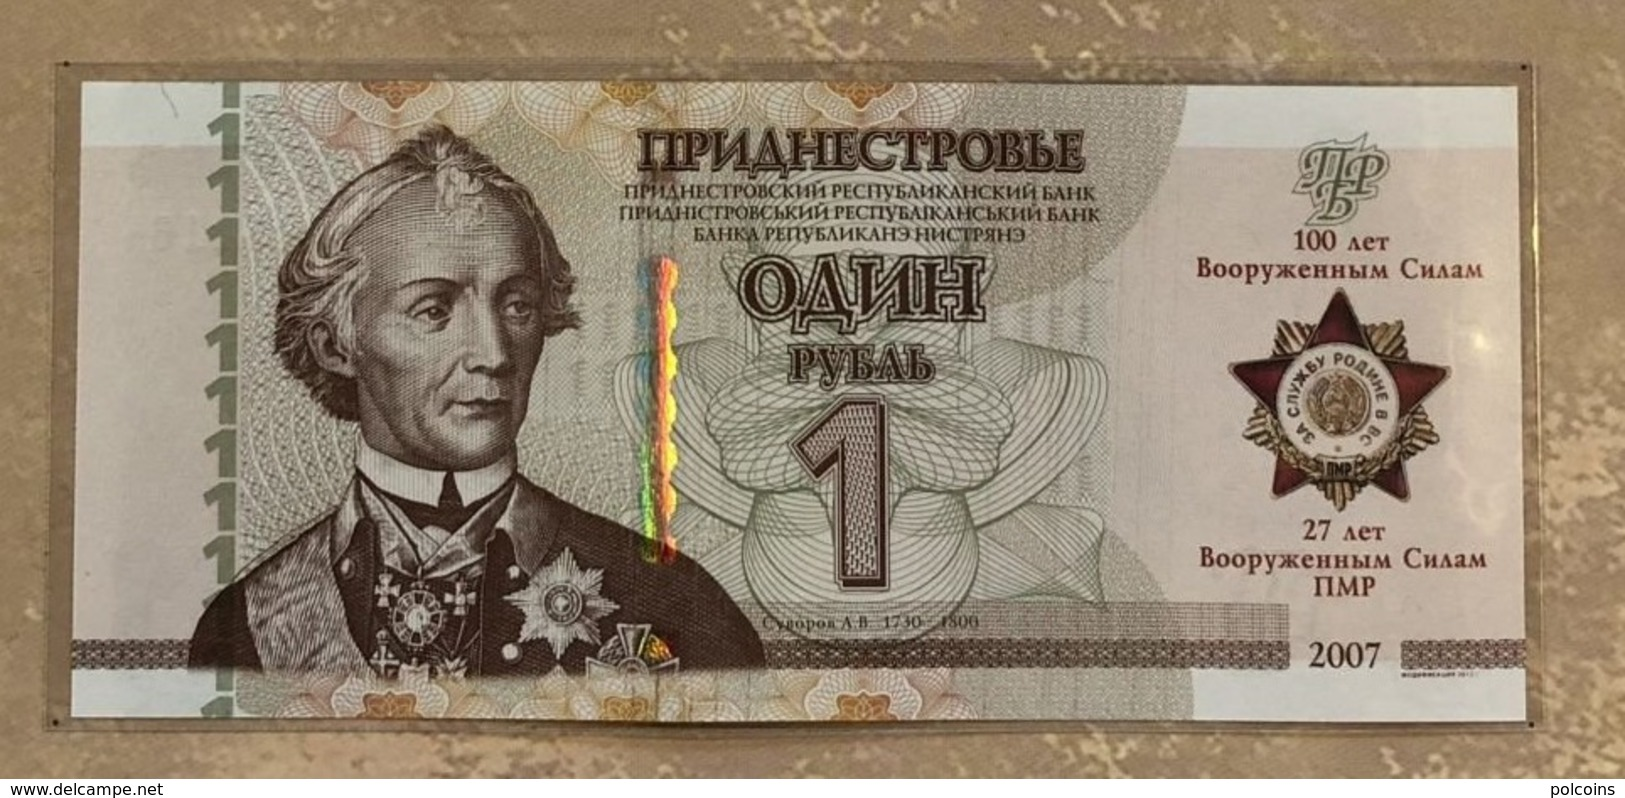 Transnistria 2018 - 1 Ruble - Armed Forces - Pick NEW UNC Booklet - Billetes